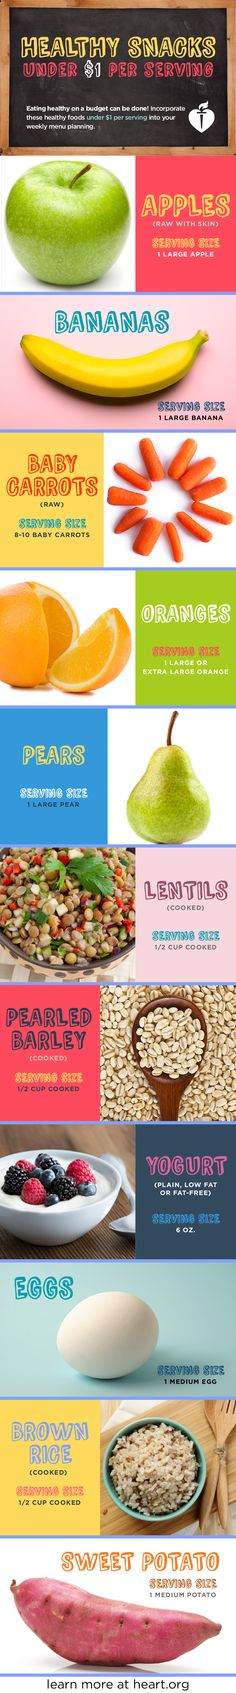 Healthy snacks don't have to be expensive. Here are some under $1 per serving.